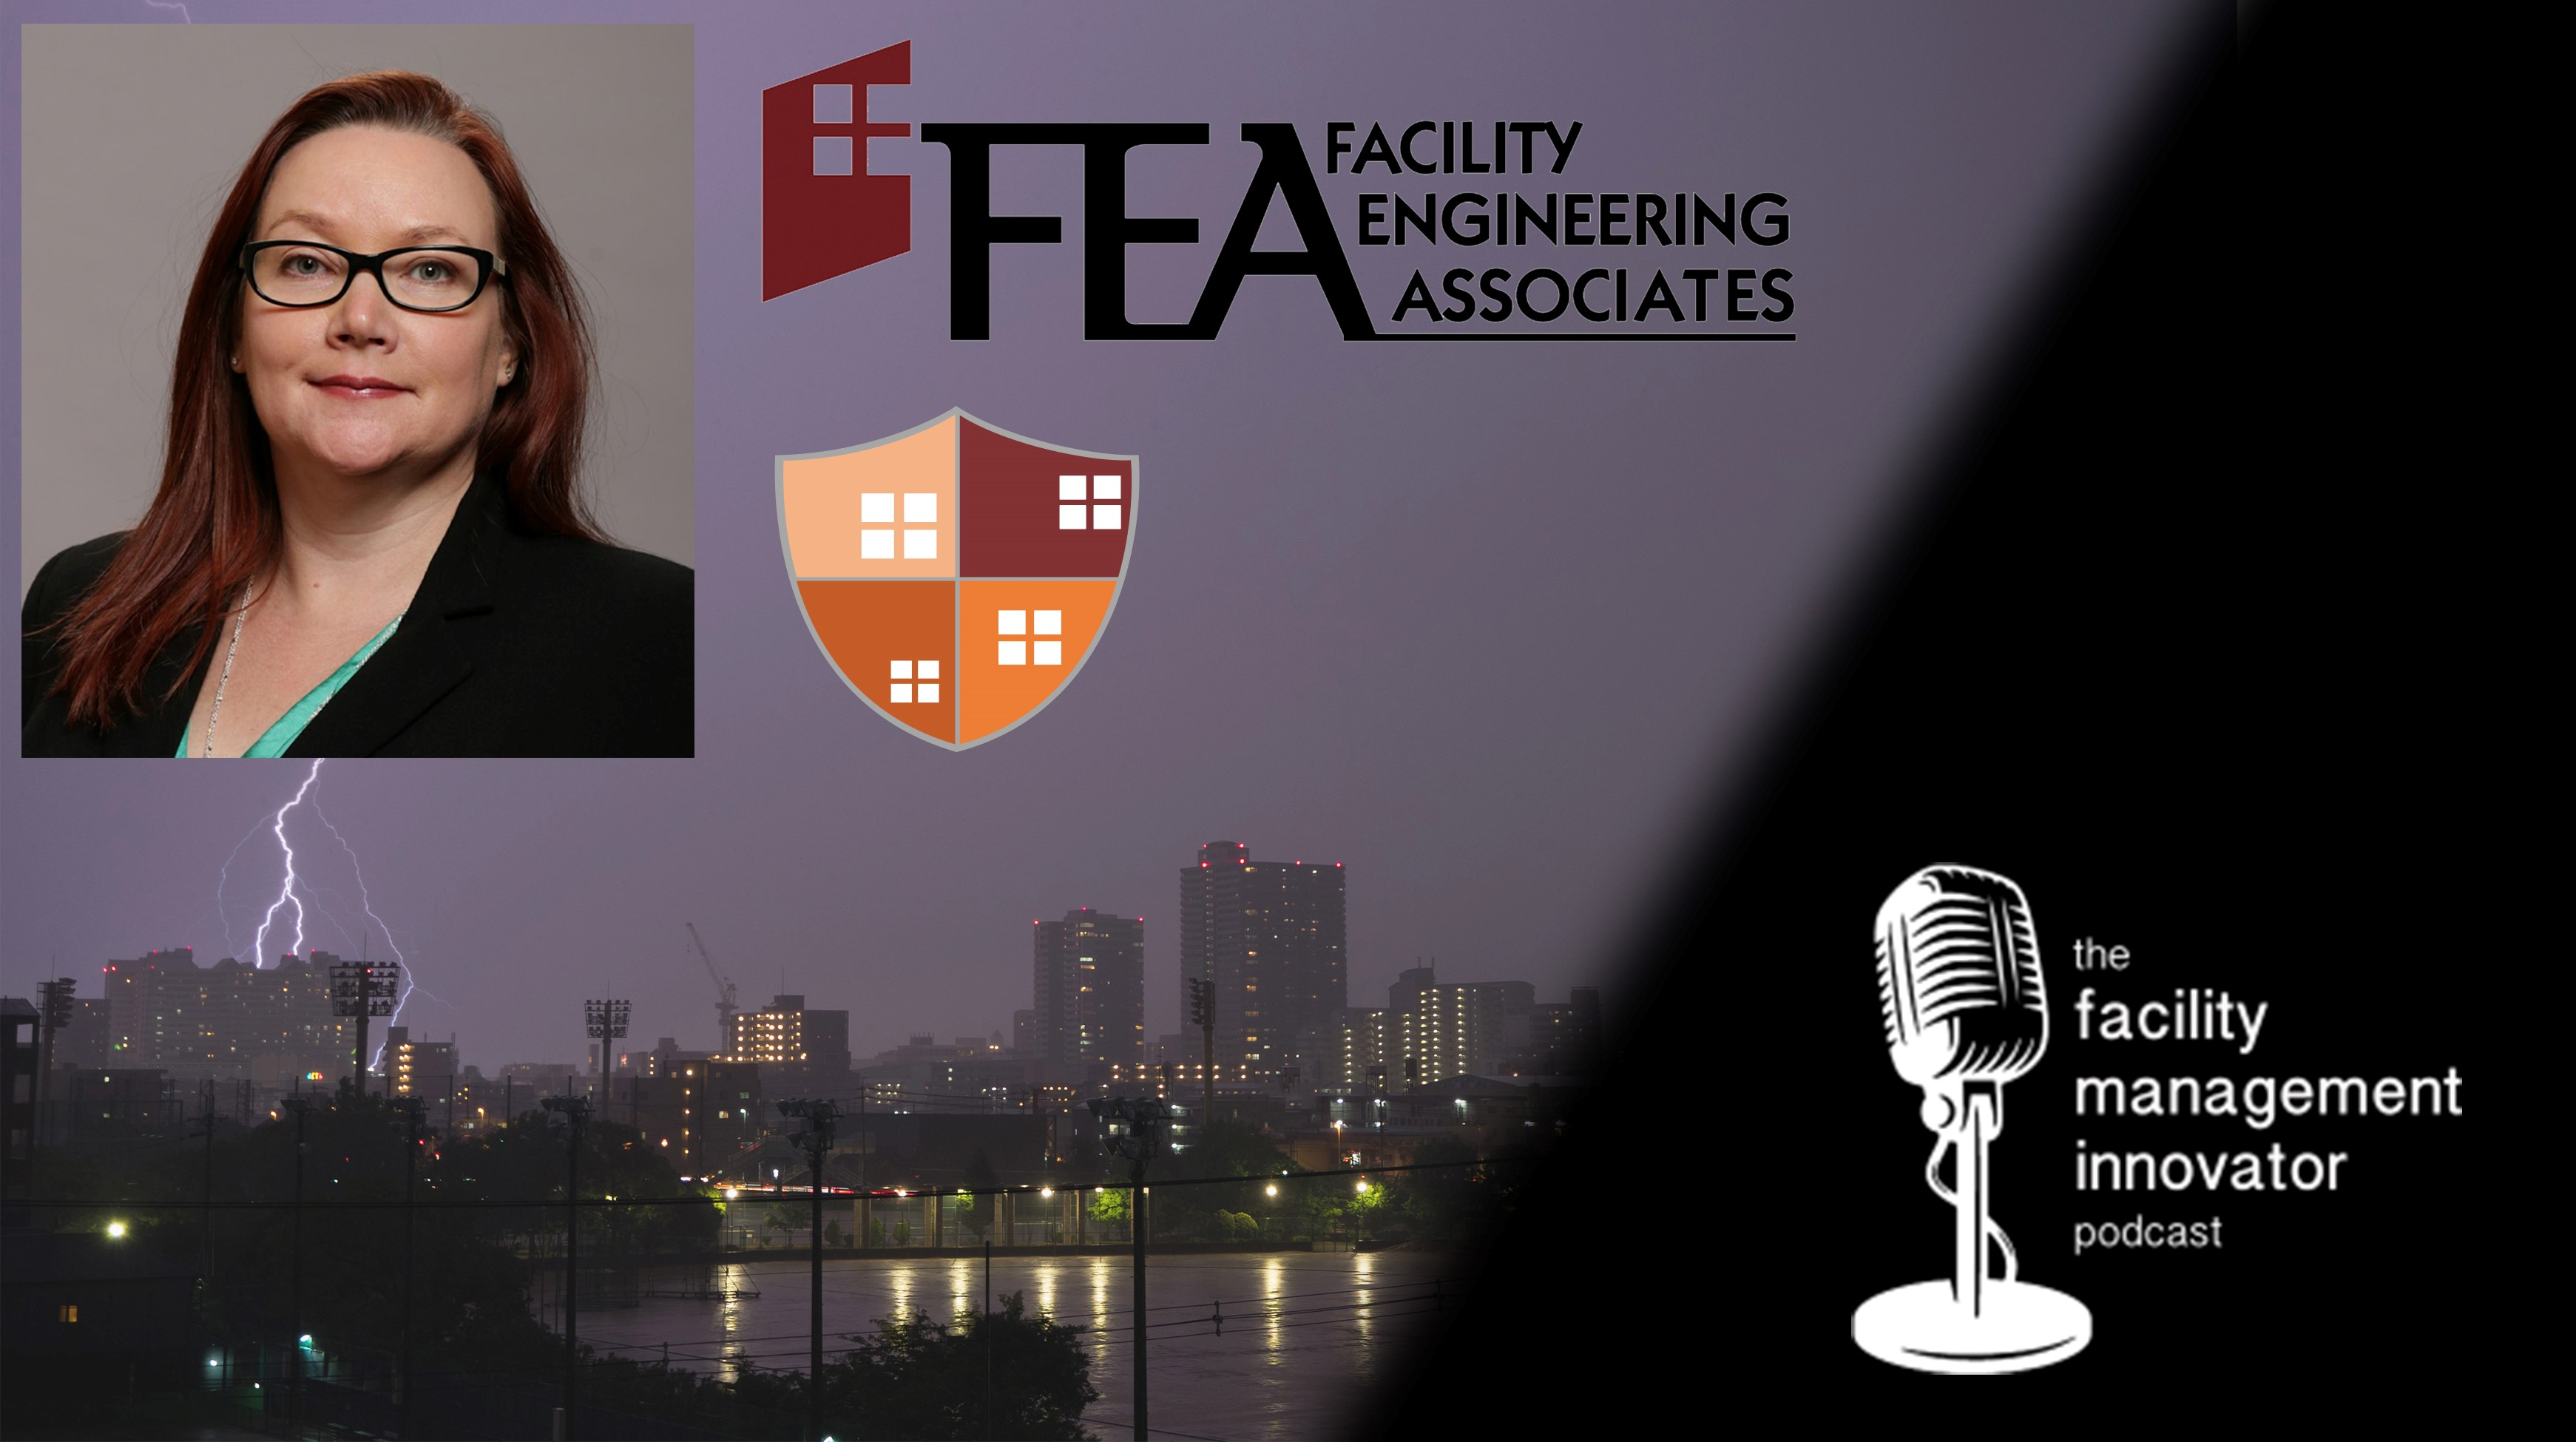 Ep. 56: Business Continuity & Resilience | Maureen Roskoski - Senior Professional at FEA